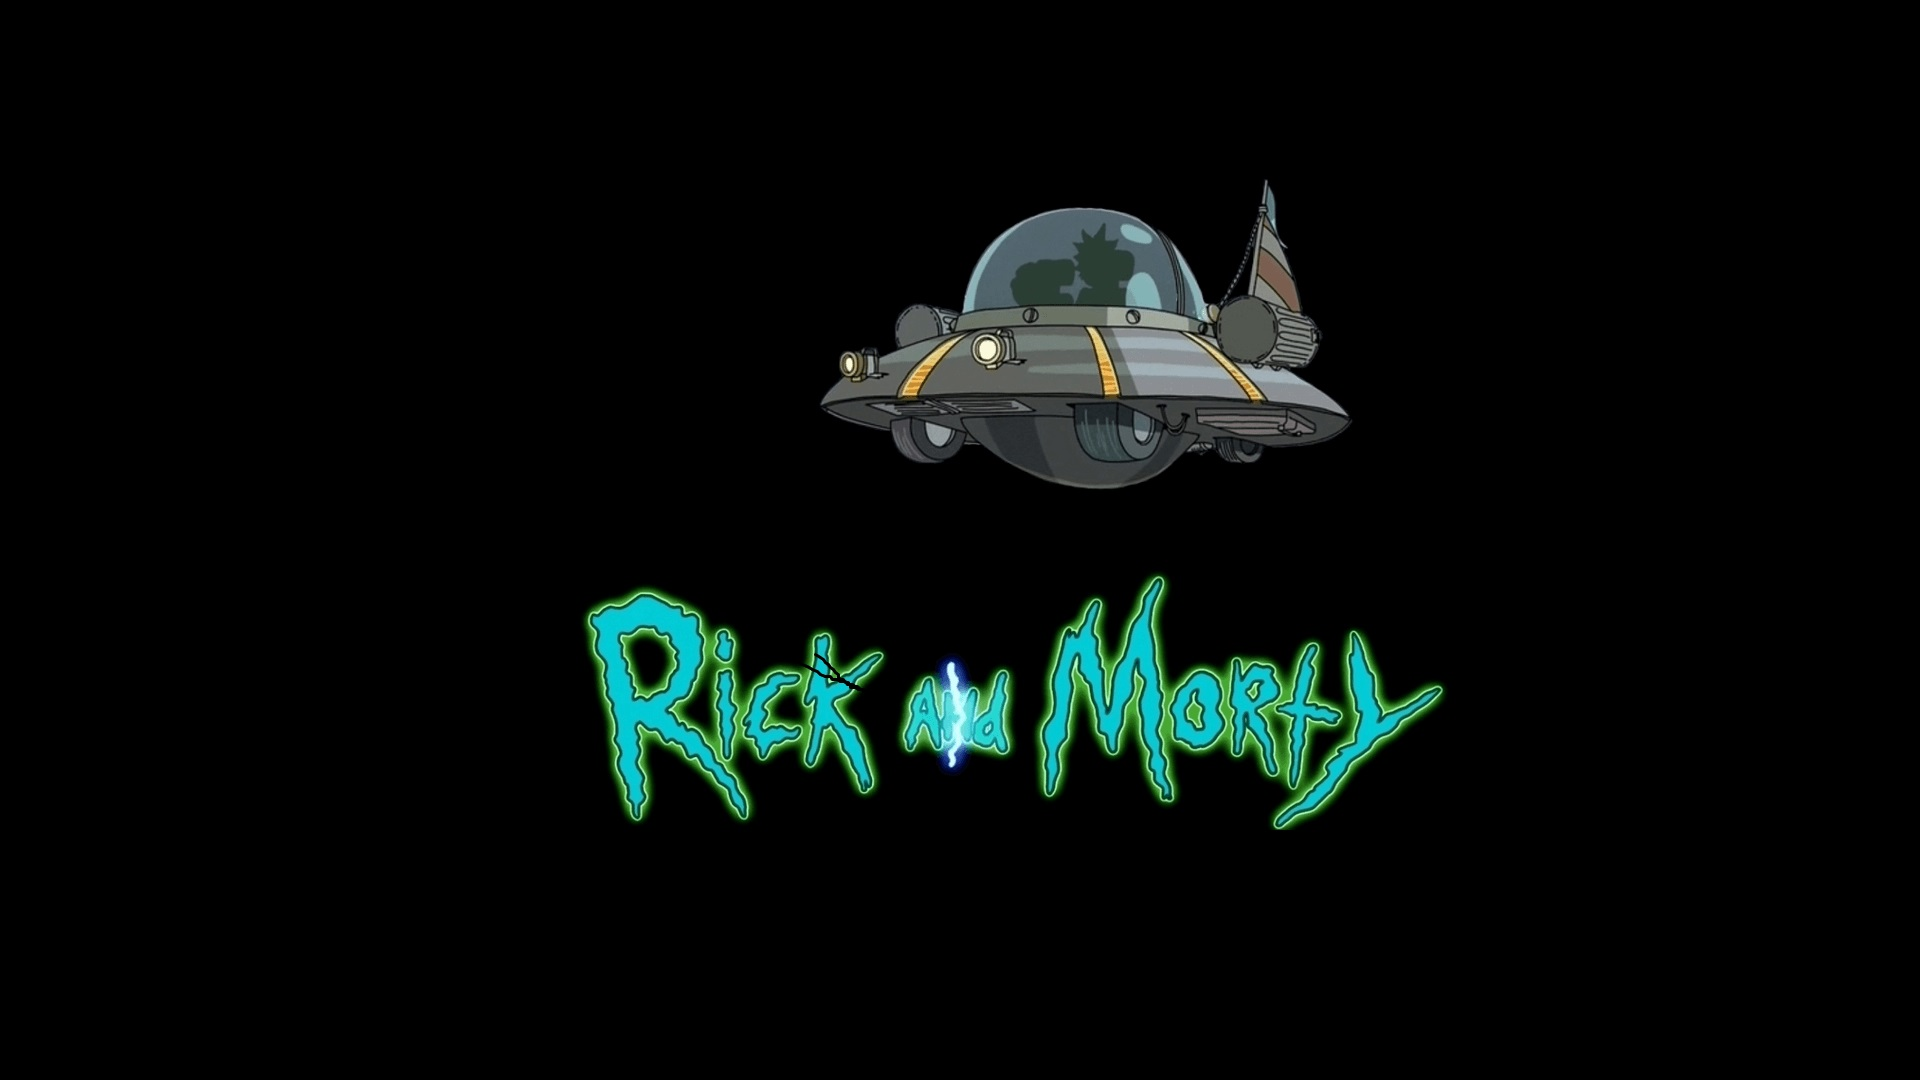 Rick and Morty background 41